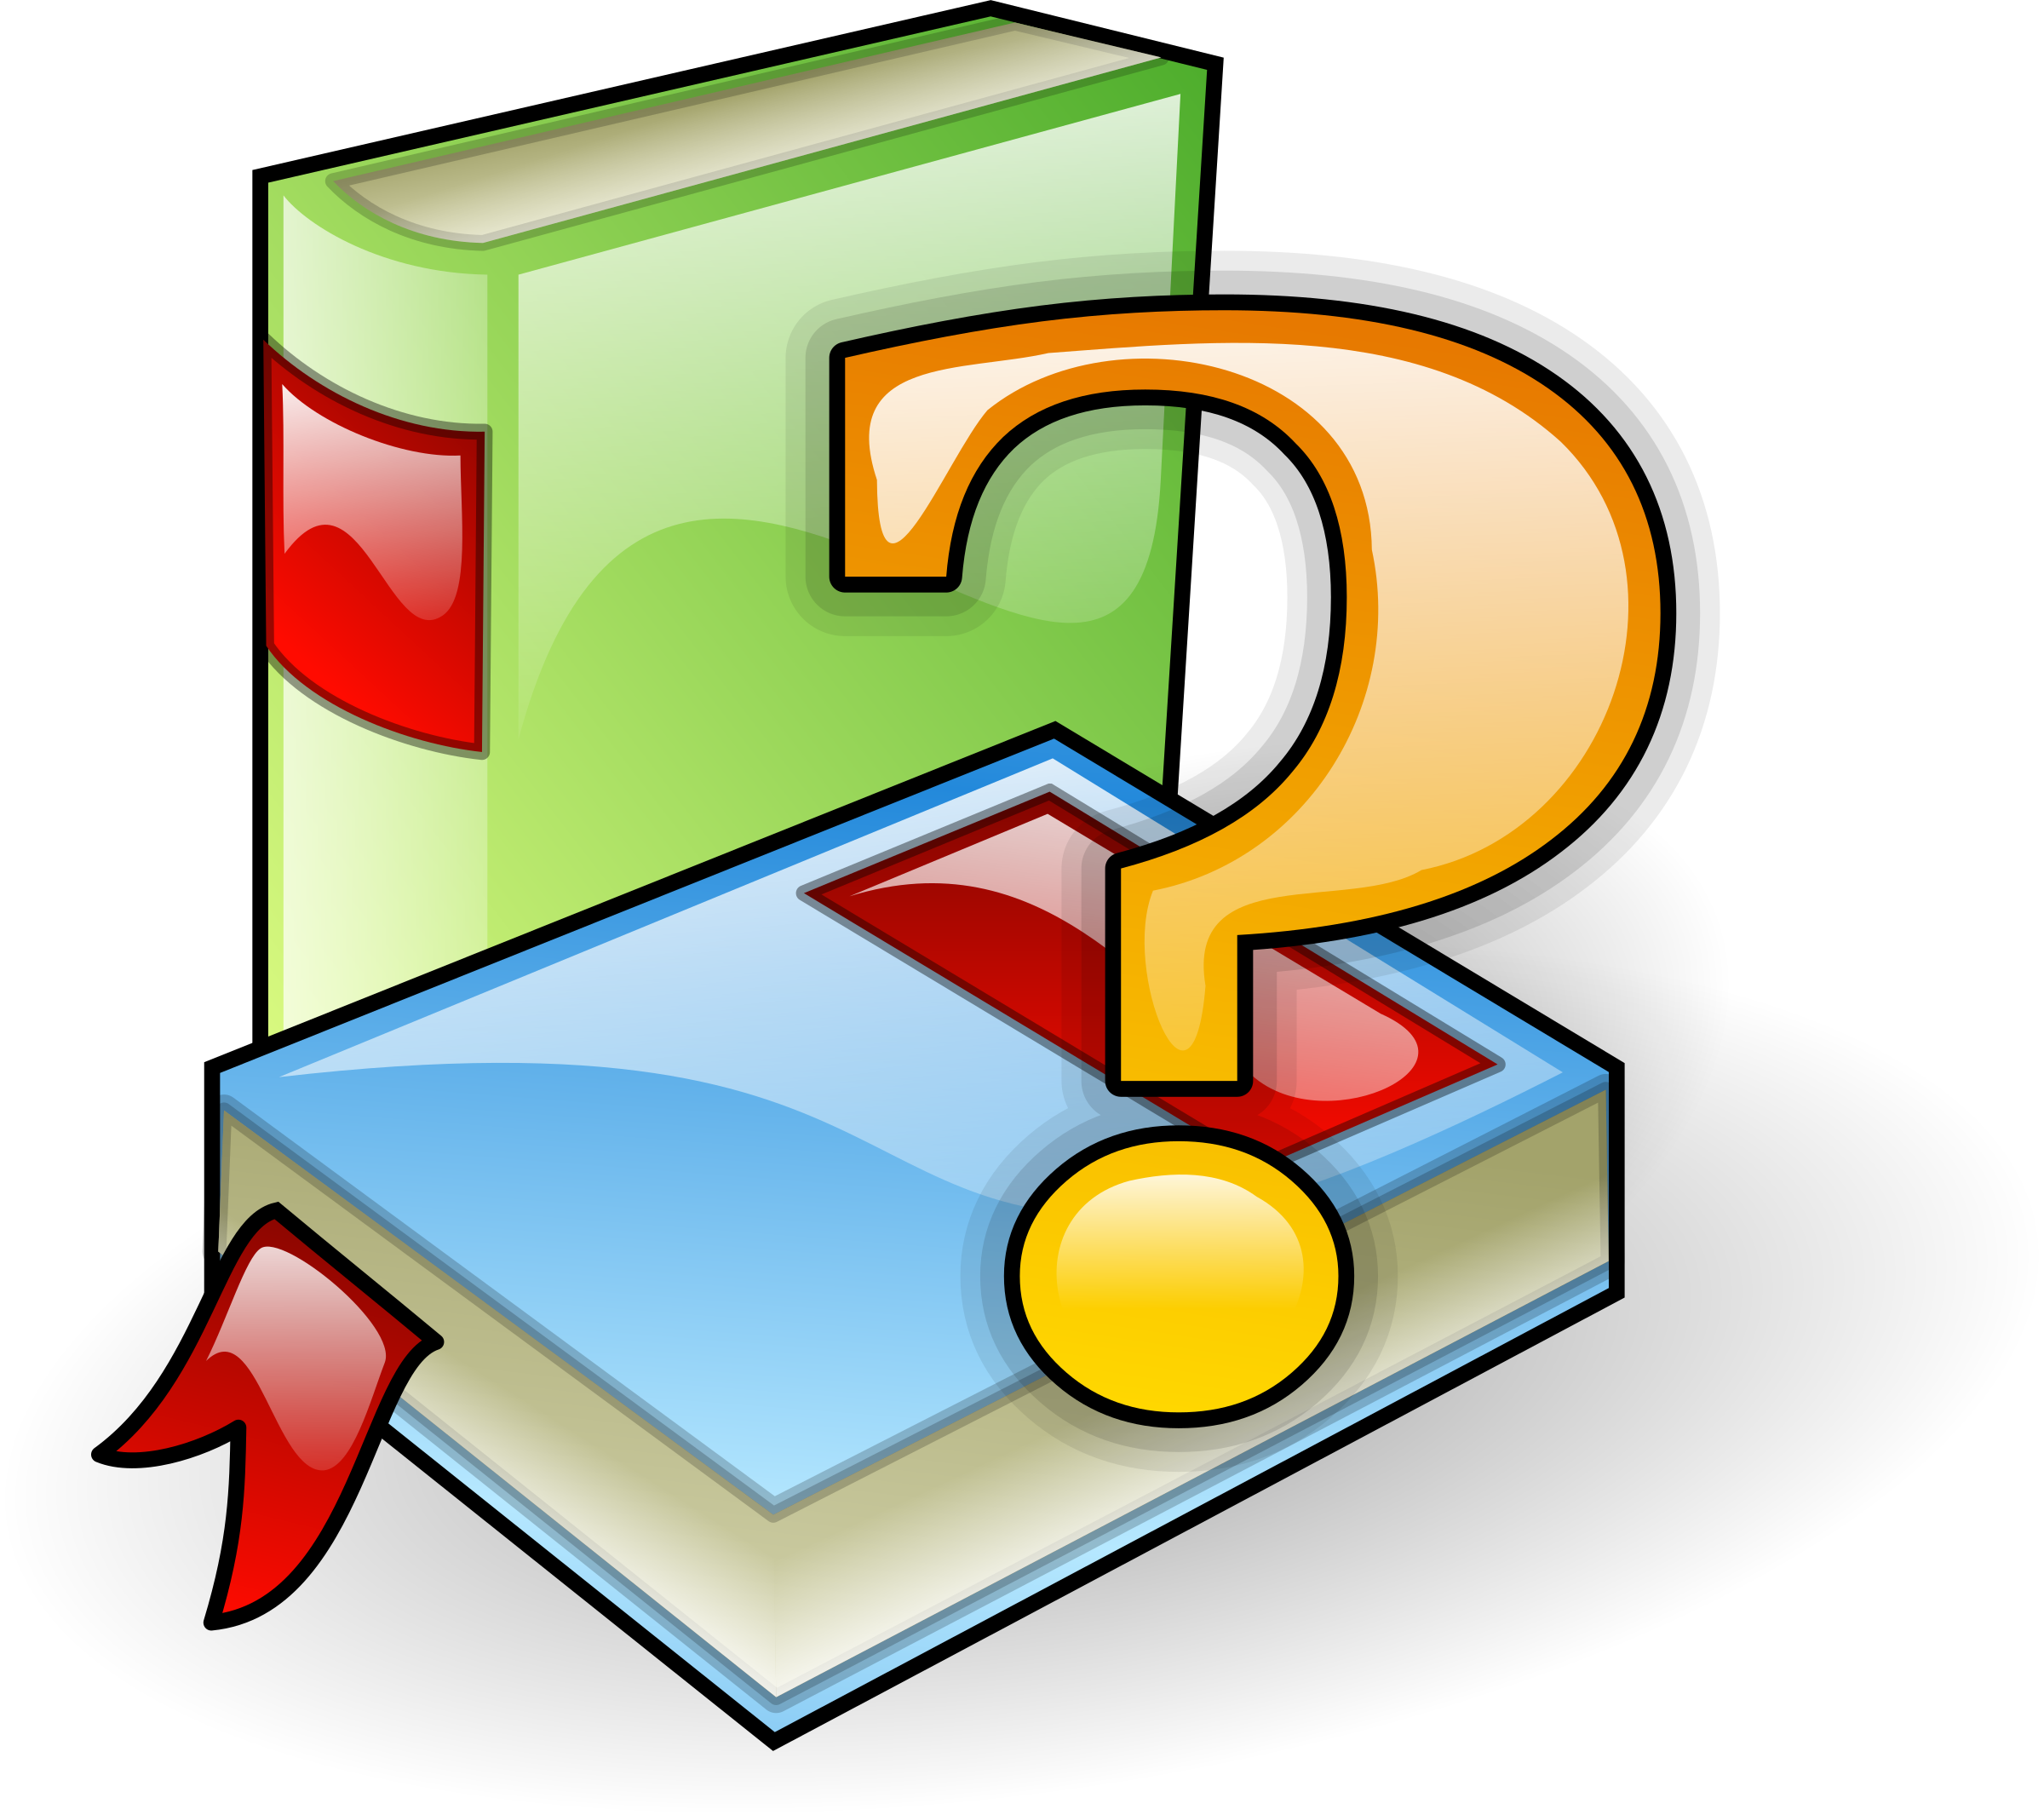 Books with question mark by AJ